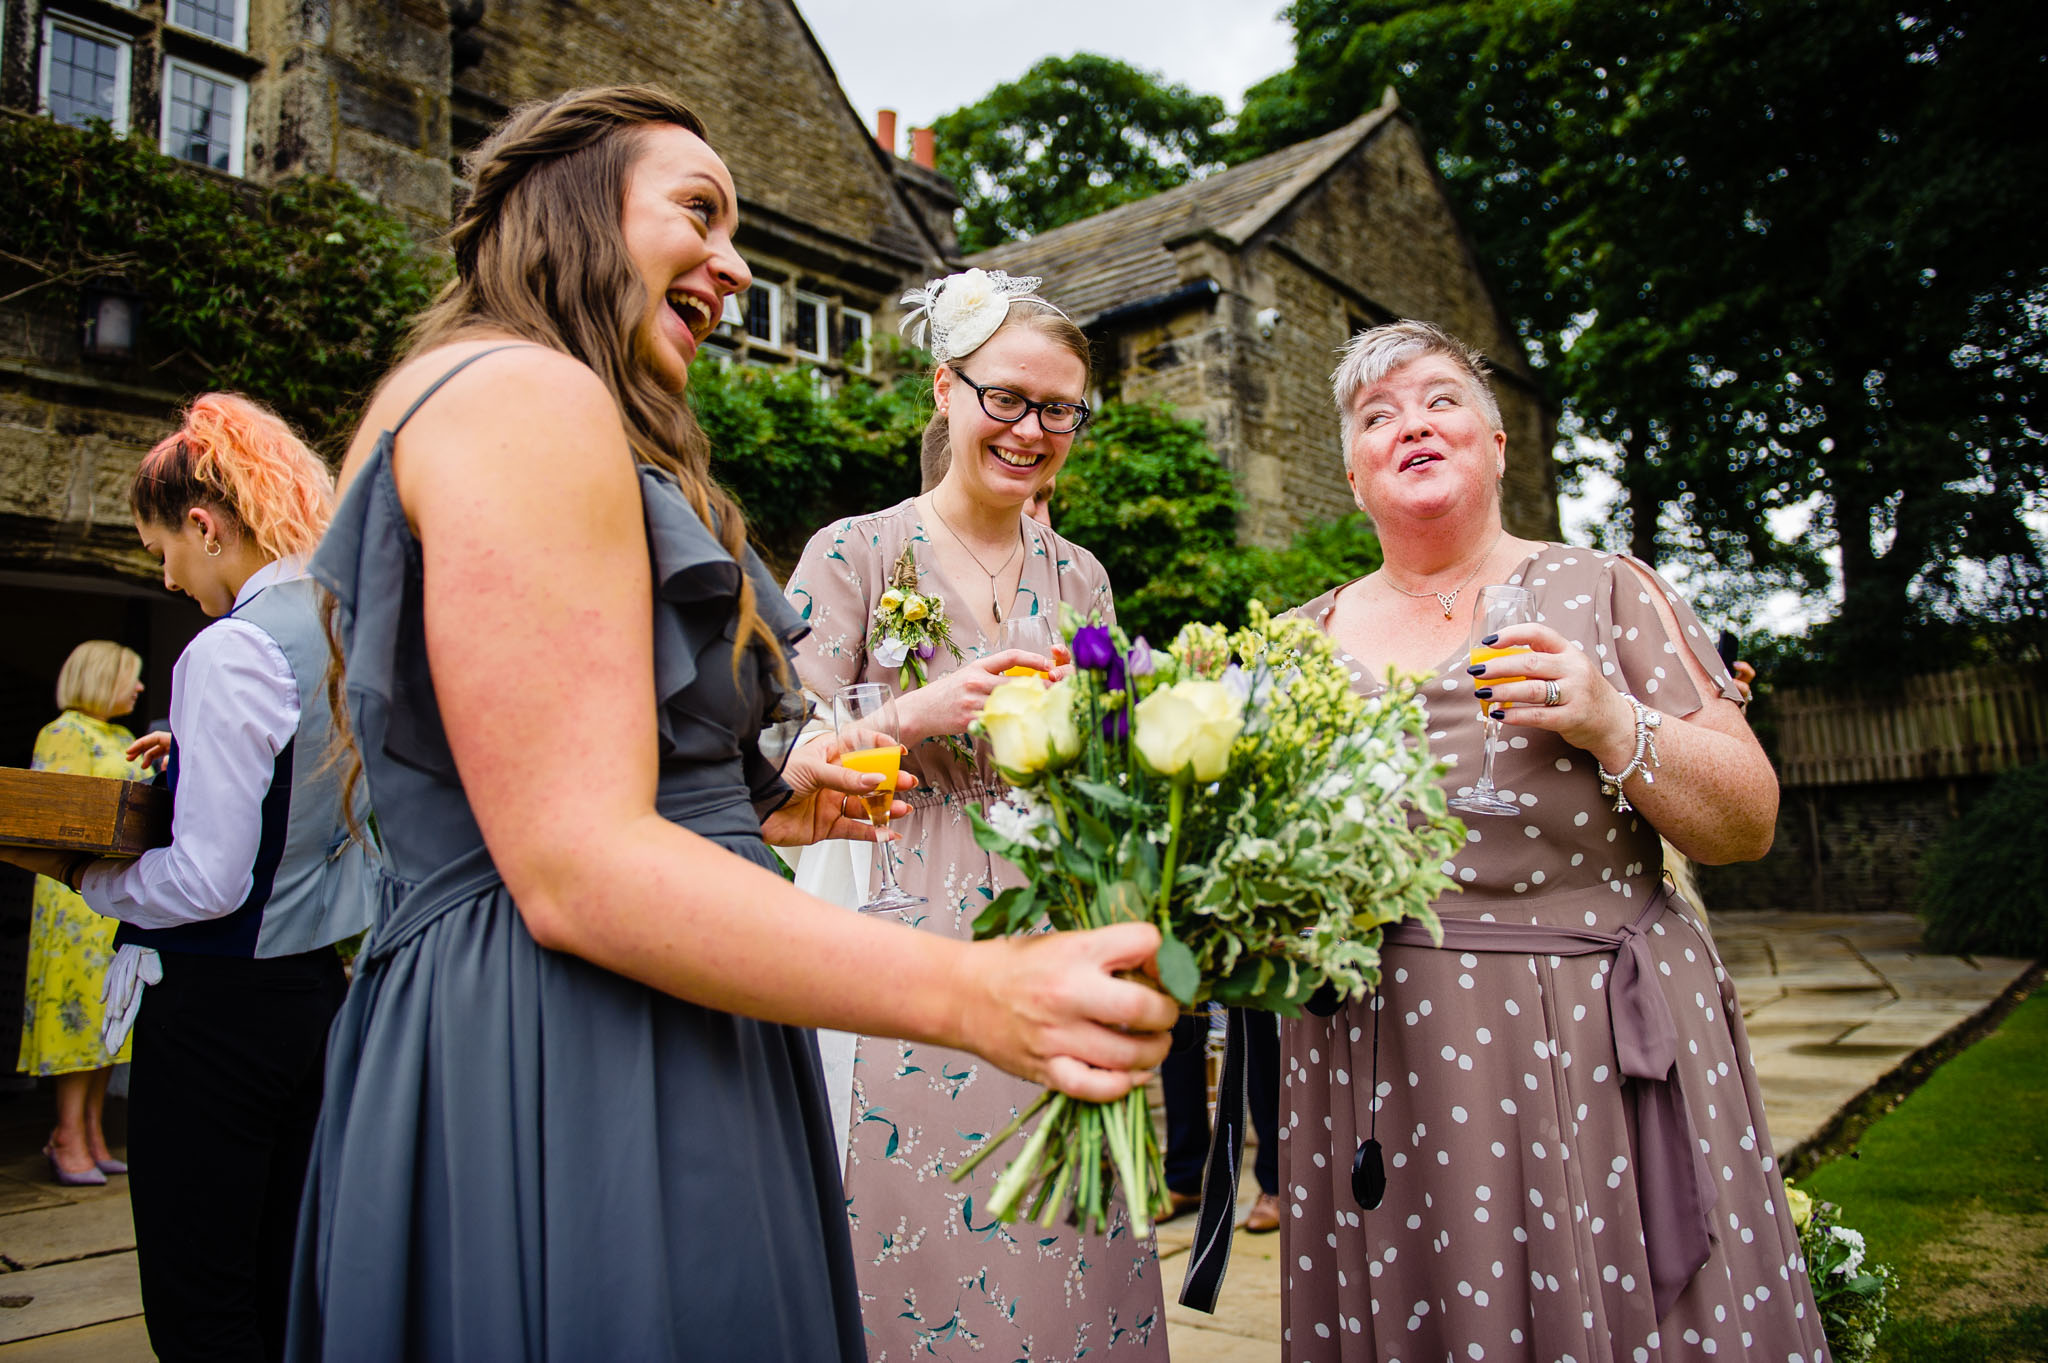 Bridesmaids and guests have a laugh over some bubbly